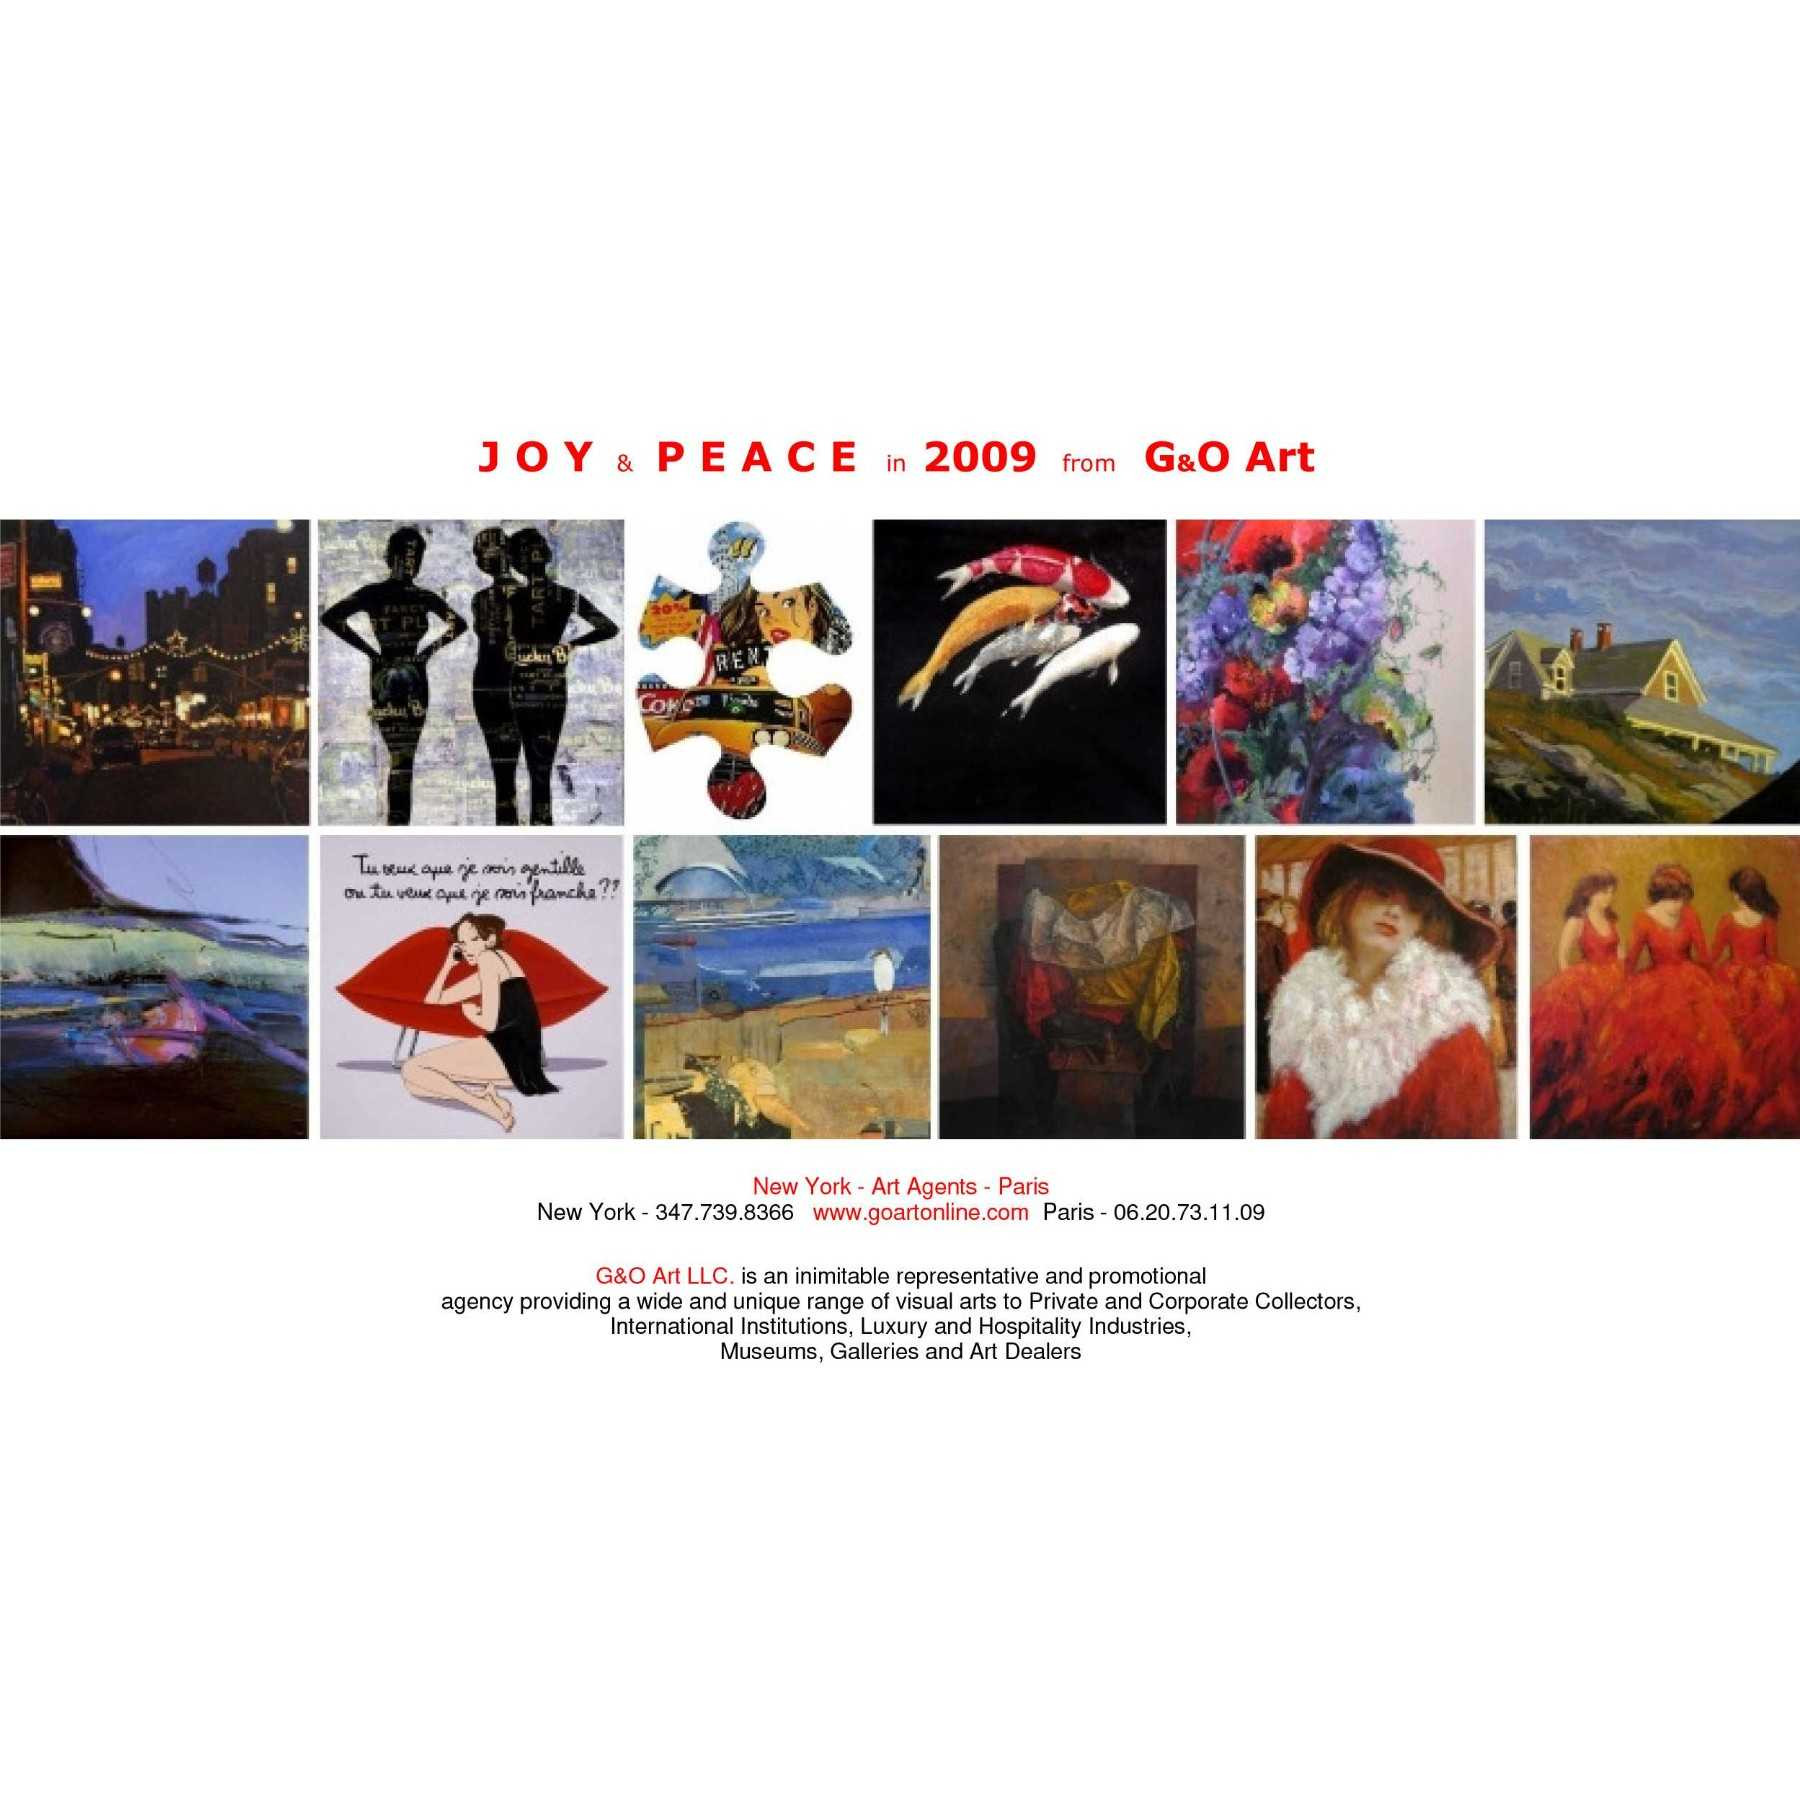 Joy and Peace in 2009